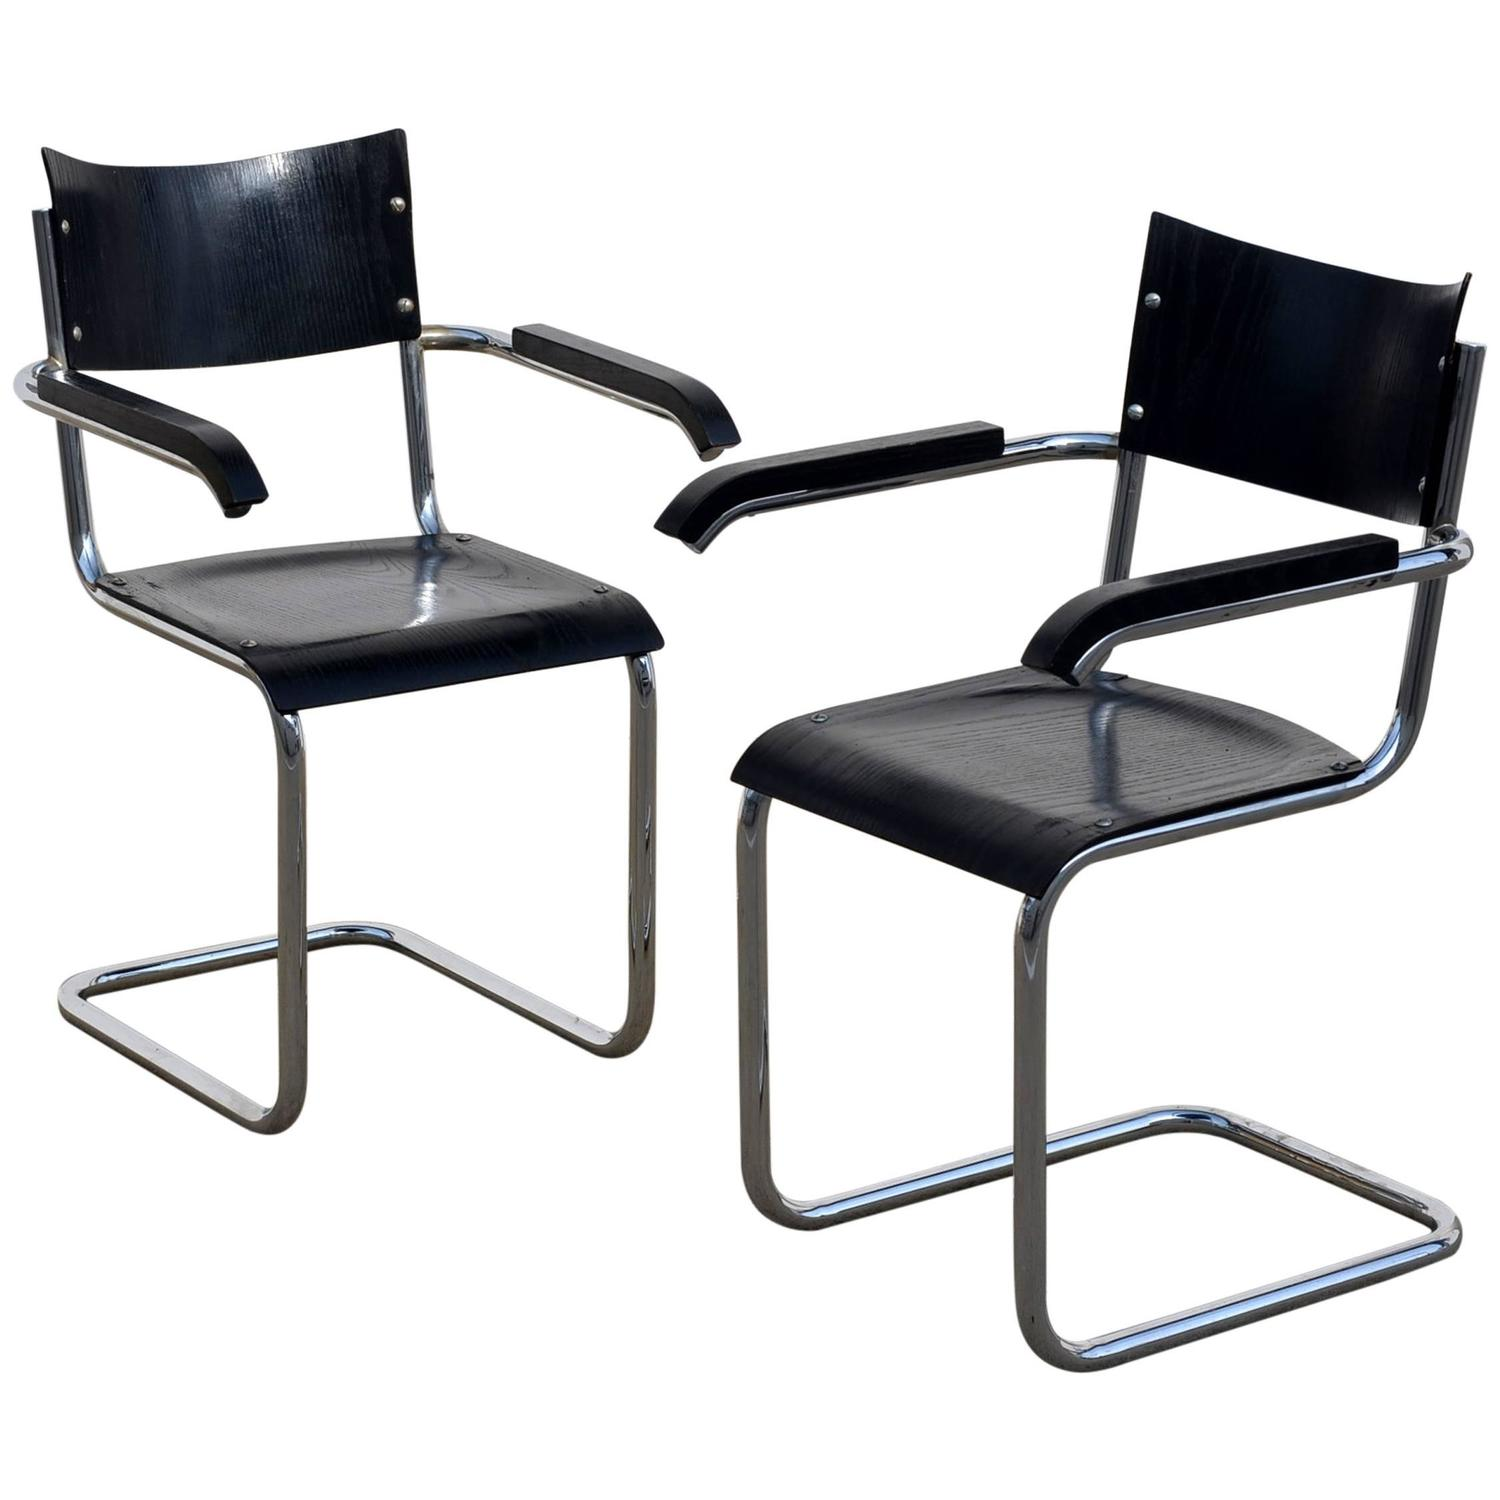 pair of chic ebonized modernist b43 armchairs by mart stam for thonet for sale at 1stdibs. Black Bedroom Furniture Sets. Home Design Ideas